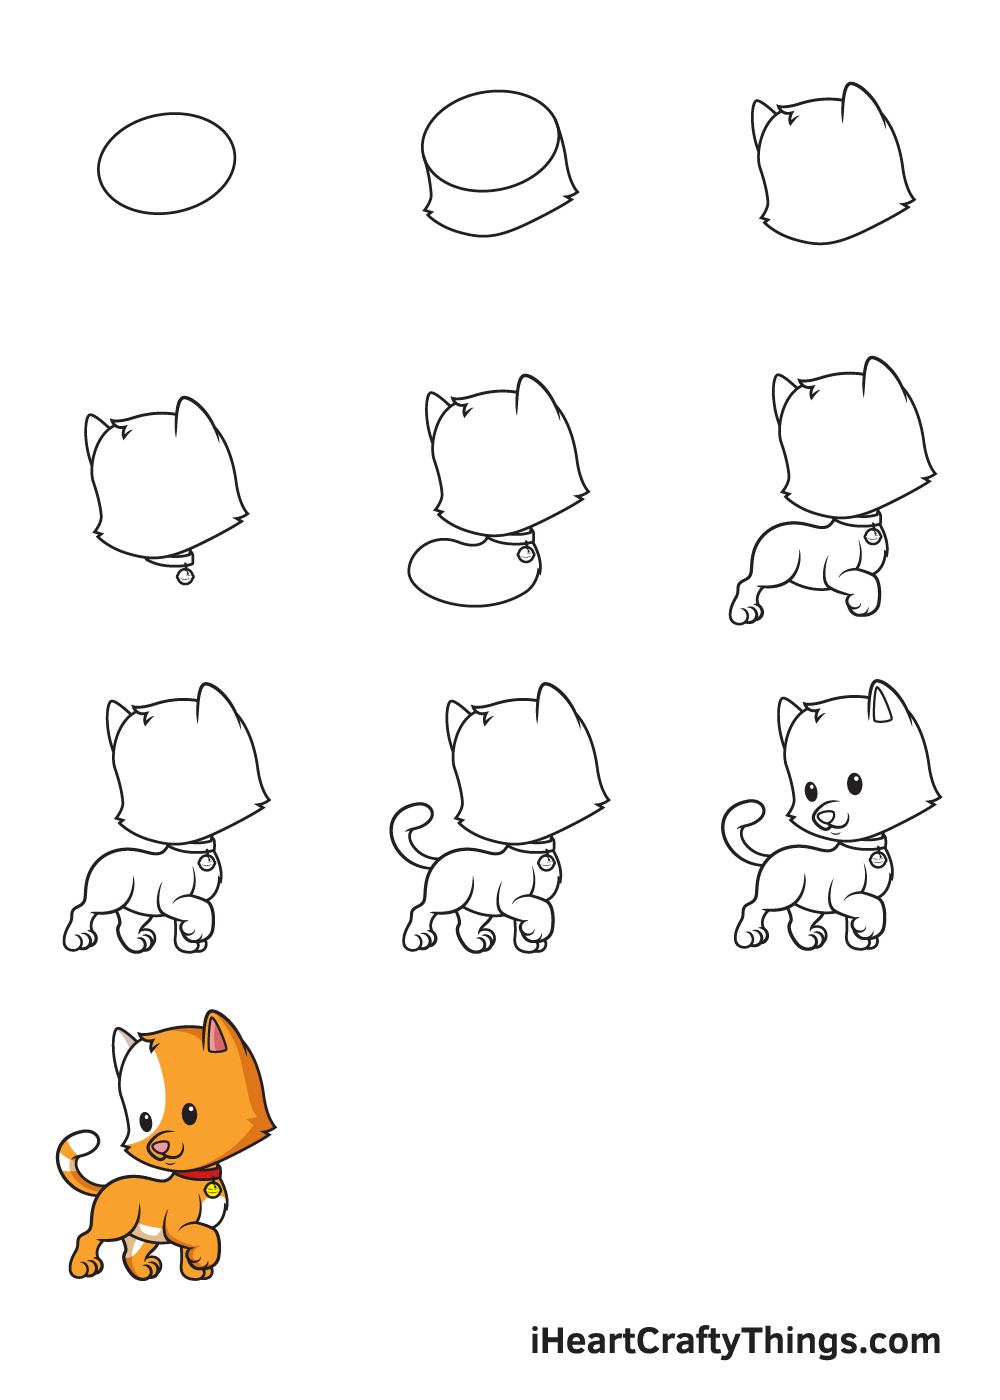 drawing cat in 9 easy steps